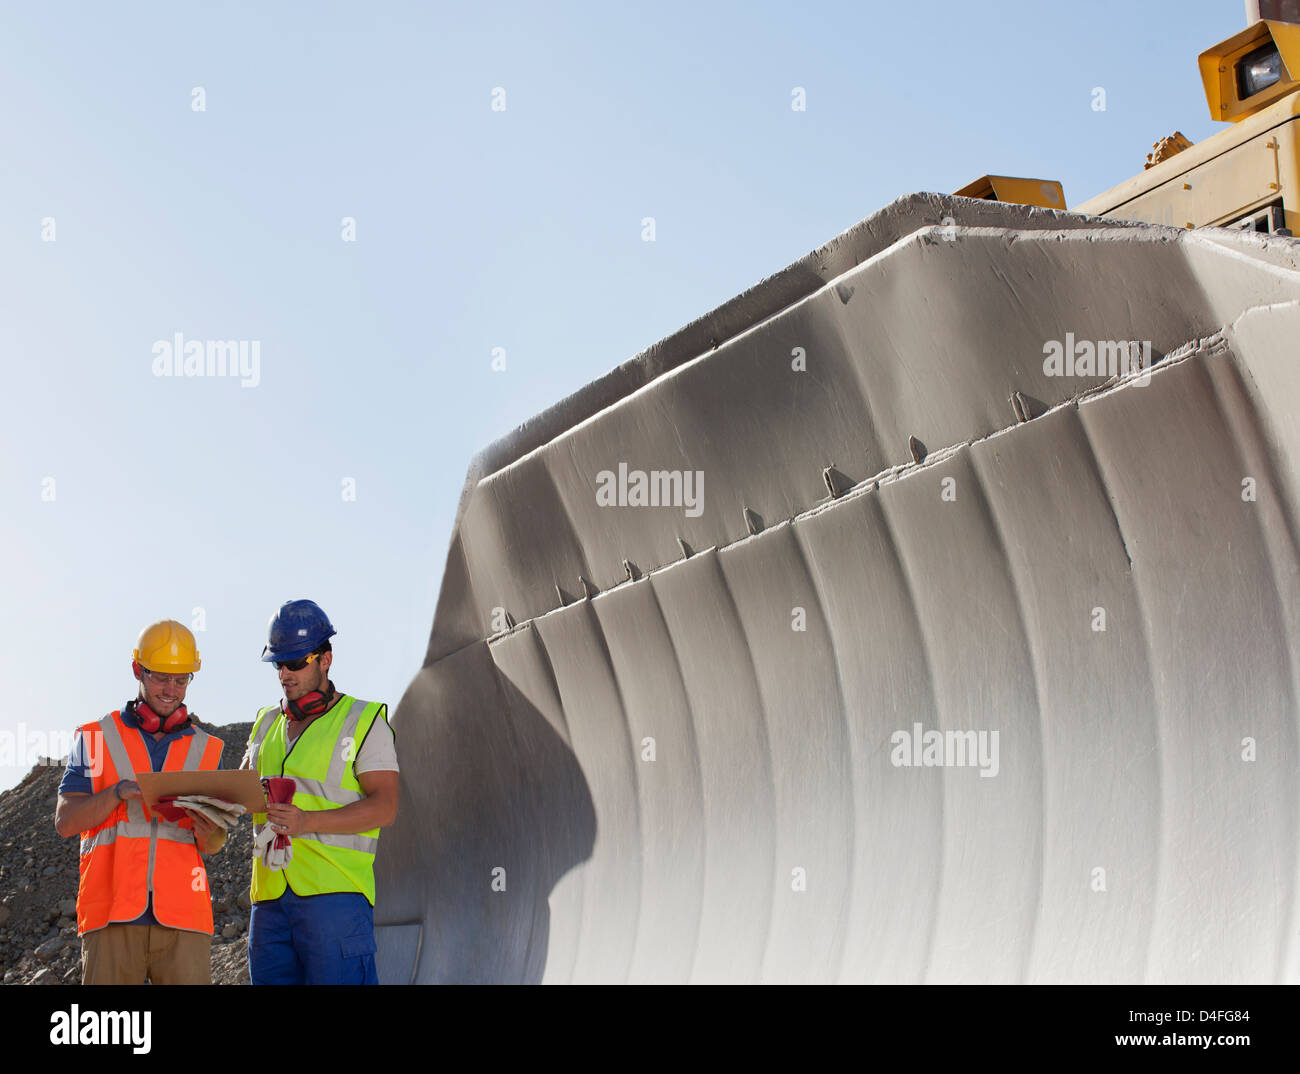 Workers reading blueprints by digger in quarry Stock Photo